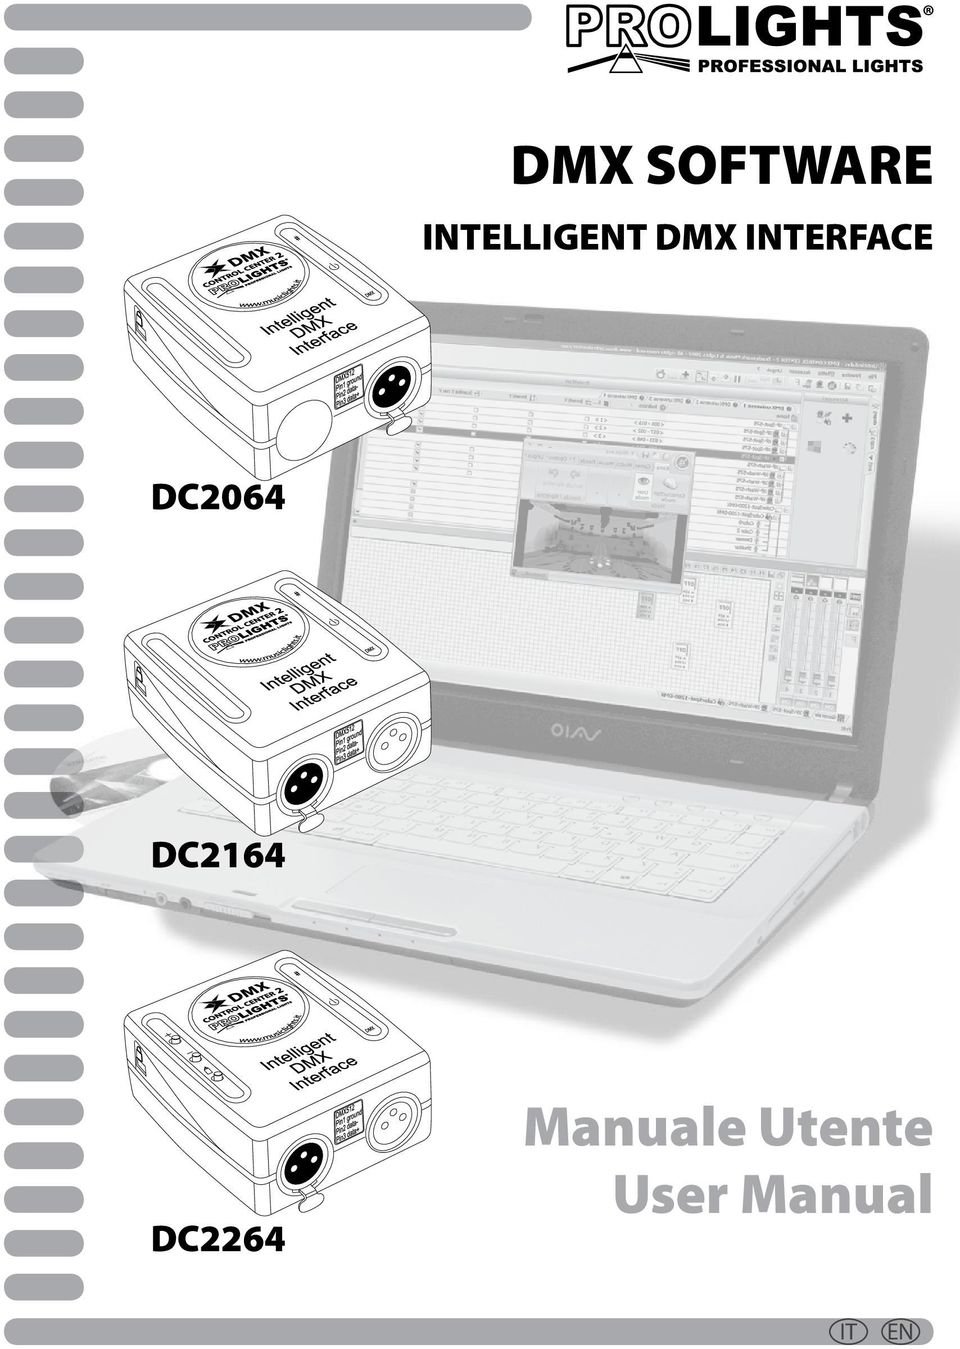 INTERFACE DC2064